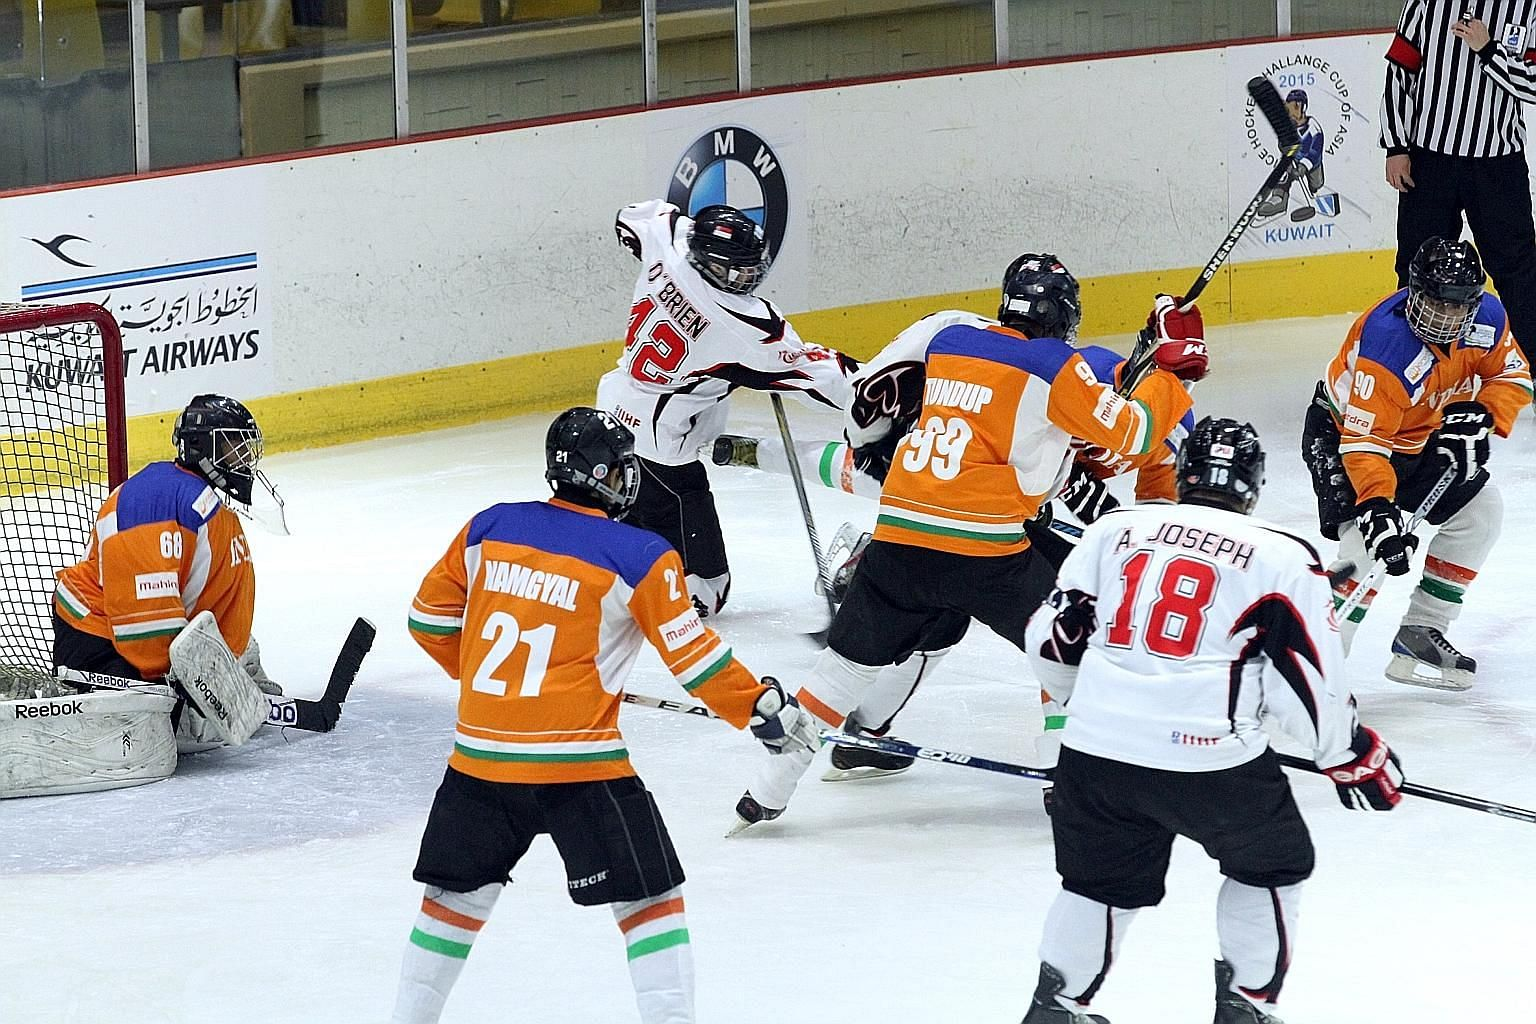 Despite the challenges of training and funding, the Singapore men's ice hockey team (in white) managed a 2nd-place finish in the International Ice Hockey Federation Challenge Cup of Asia in Kuwait in March.